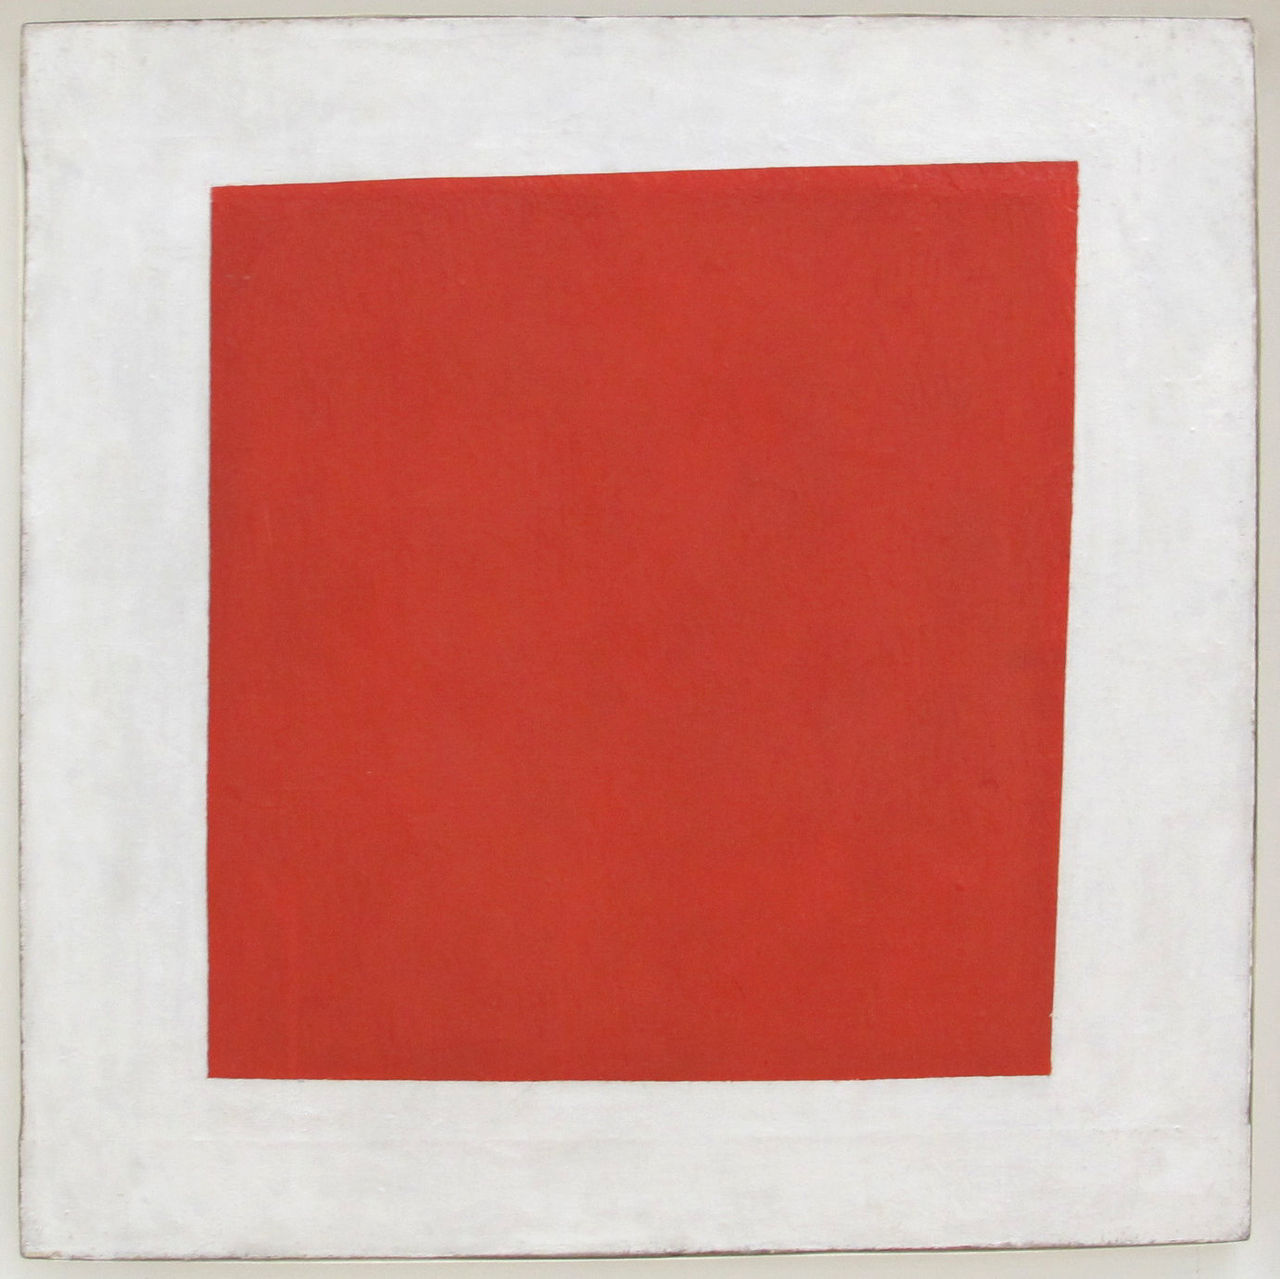 Kazimir Malevich,  Red Square: Painterly Realism of a Peasant Woman in Two Dimensions , 1915, State Russian Museum, St. Petersburg.